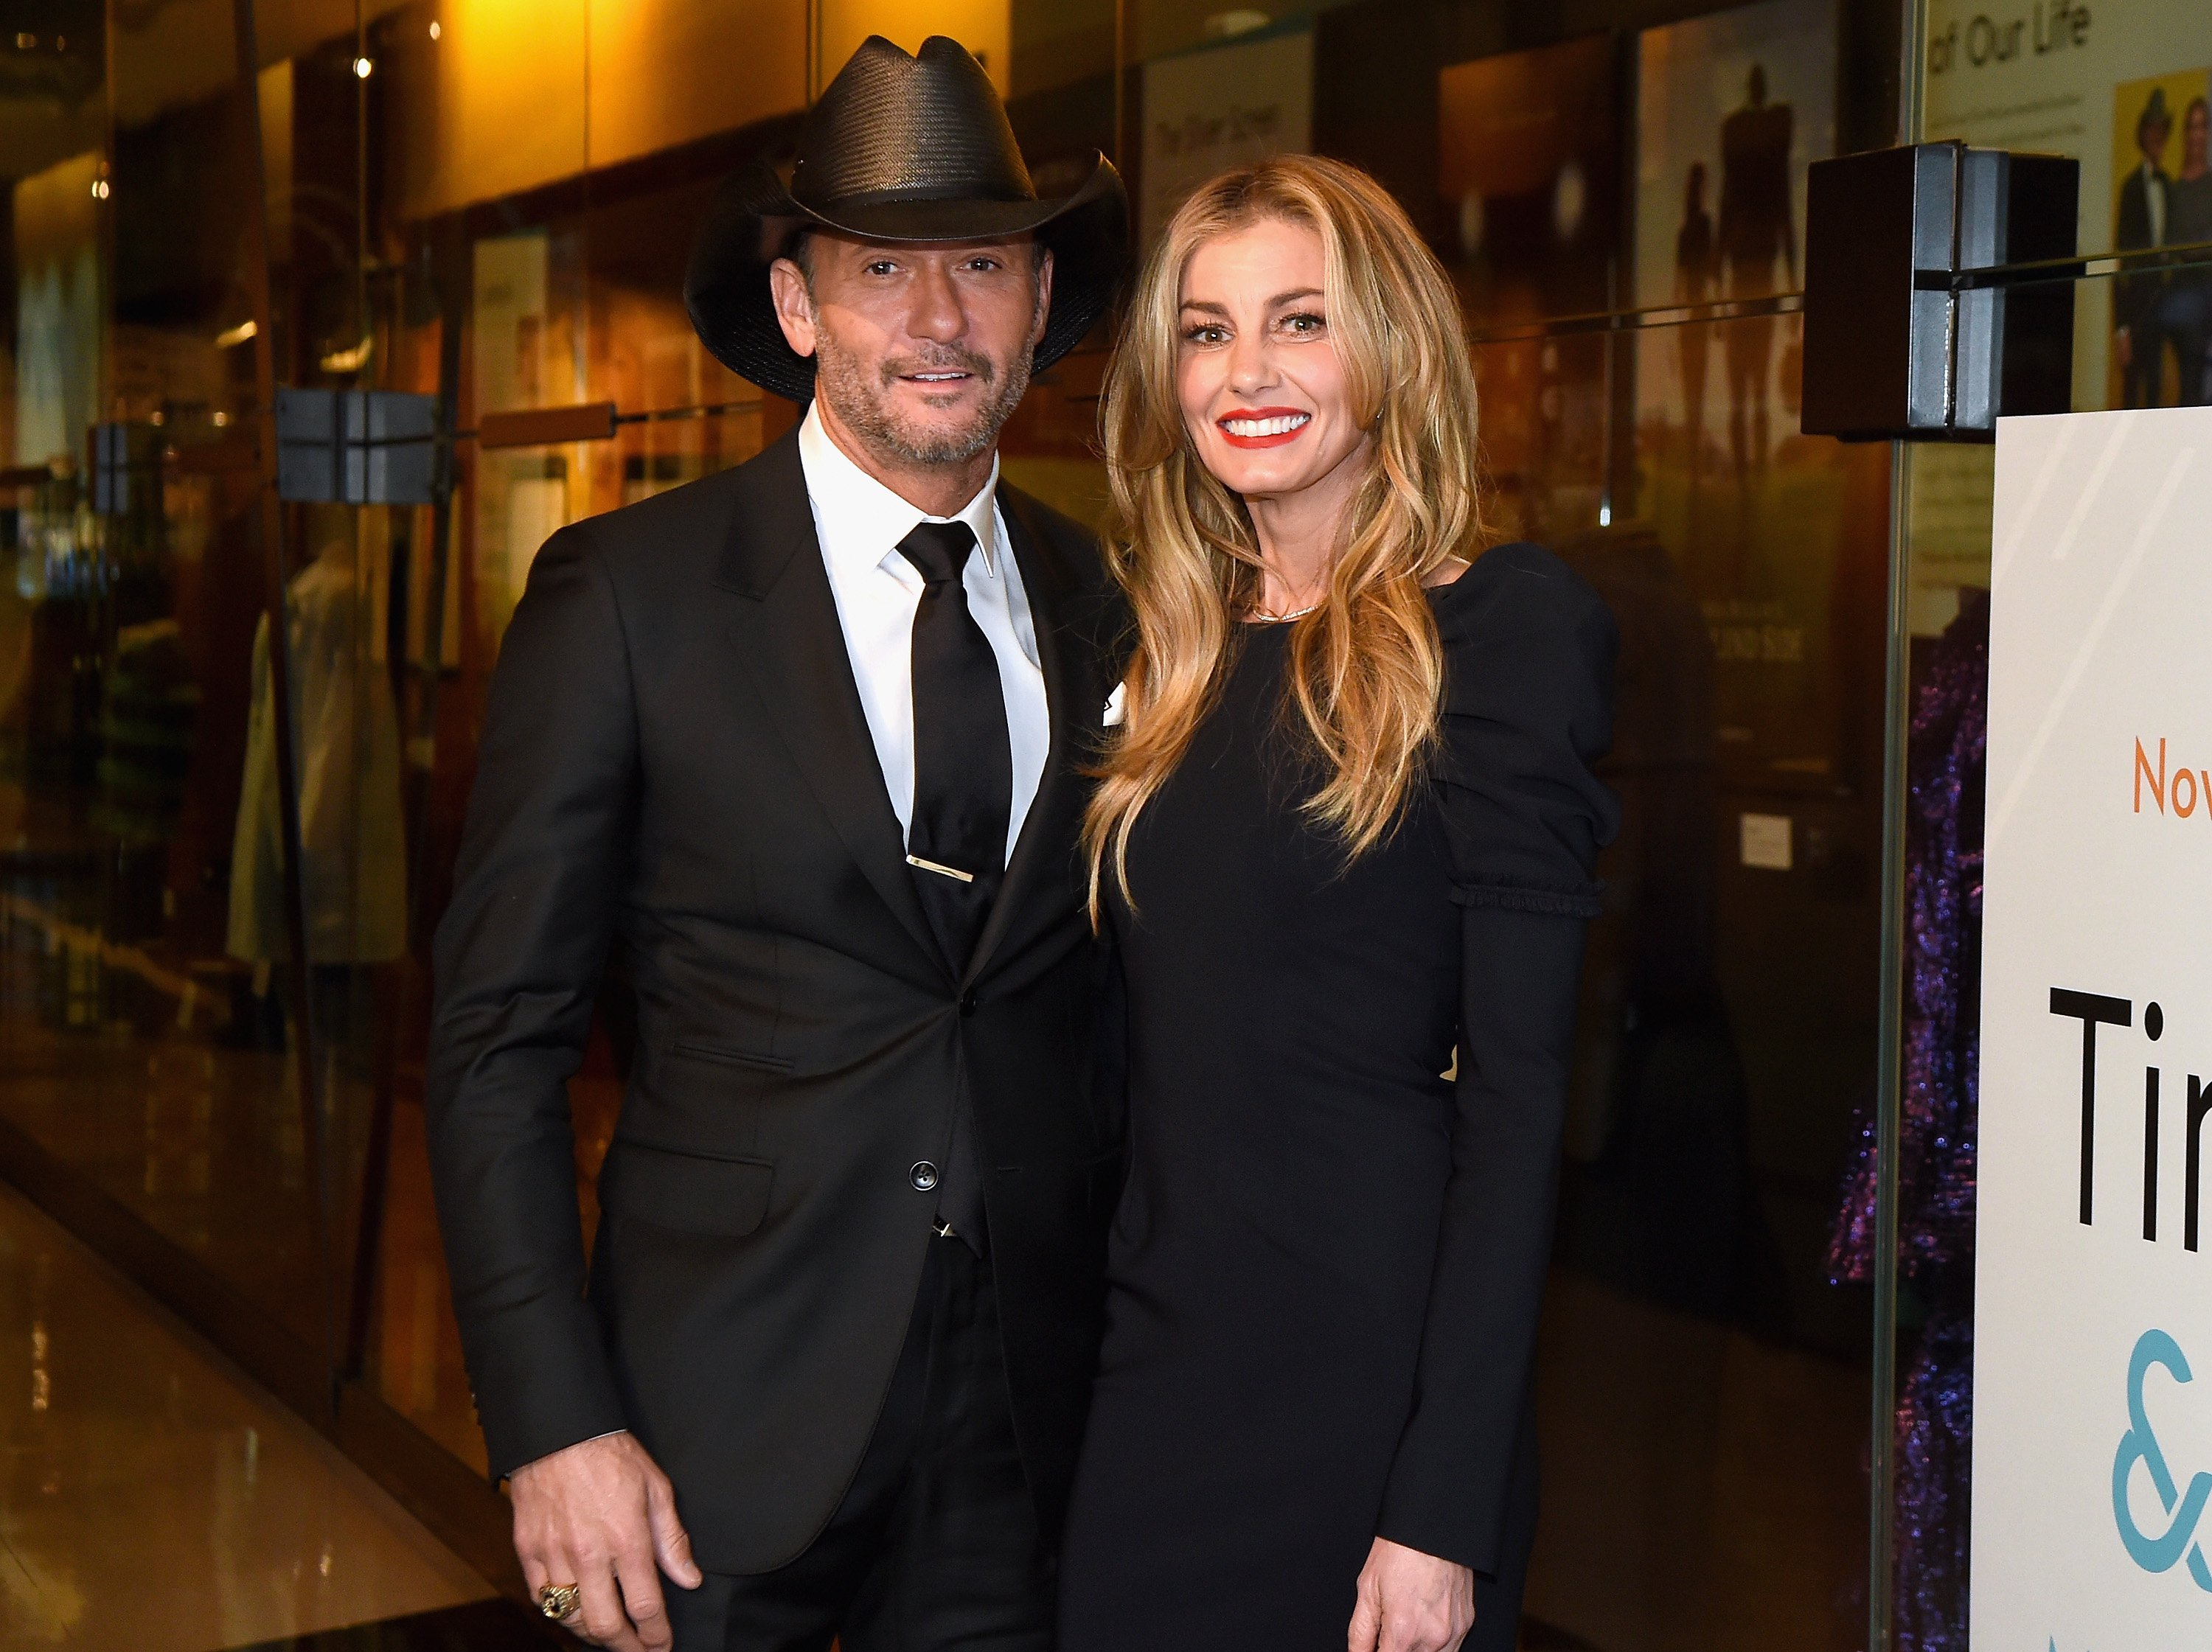 Image Credits: Getty Images / Rick Diamond | Tim McGraw and Faith Hill attend the Country Music Hall of Fame and Museum's debut of the Tim McGraw and Faith Hill Exhibition on November 15, 2017 in Nashville, Tennessee.